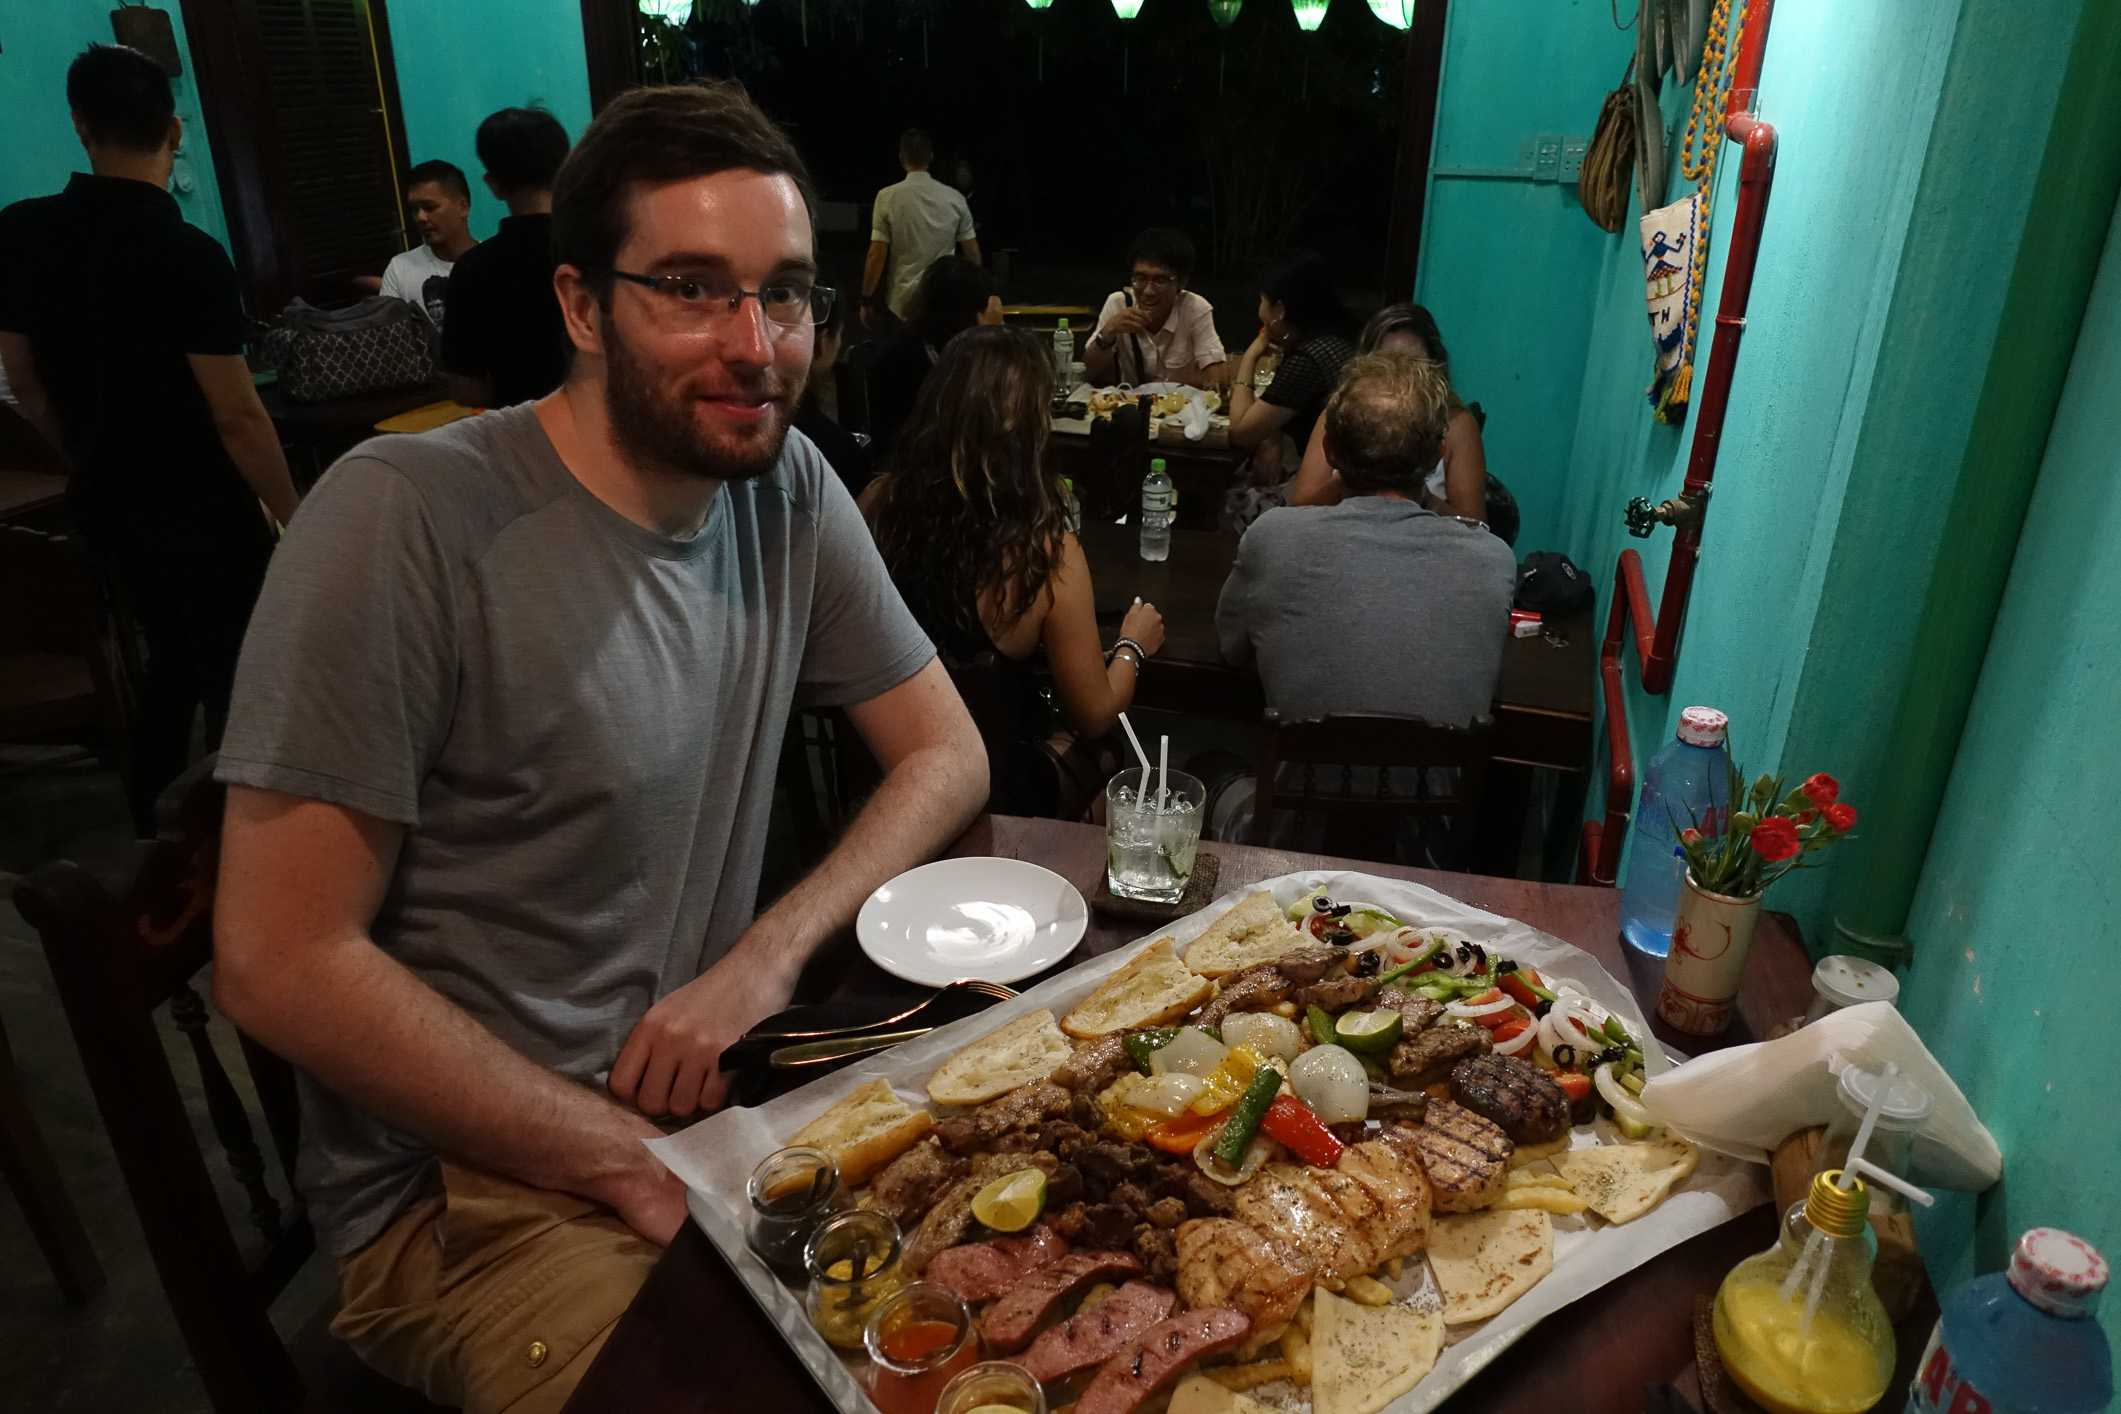 Eating Greek food in Hoi An